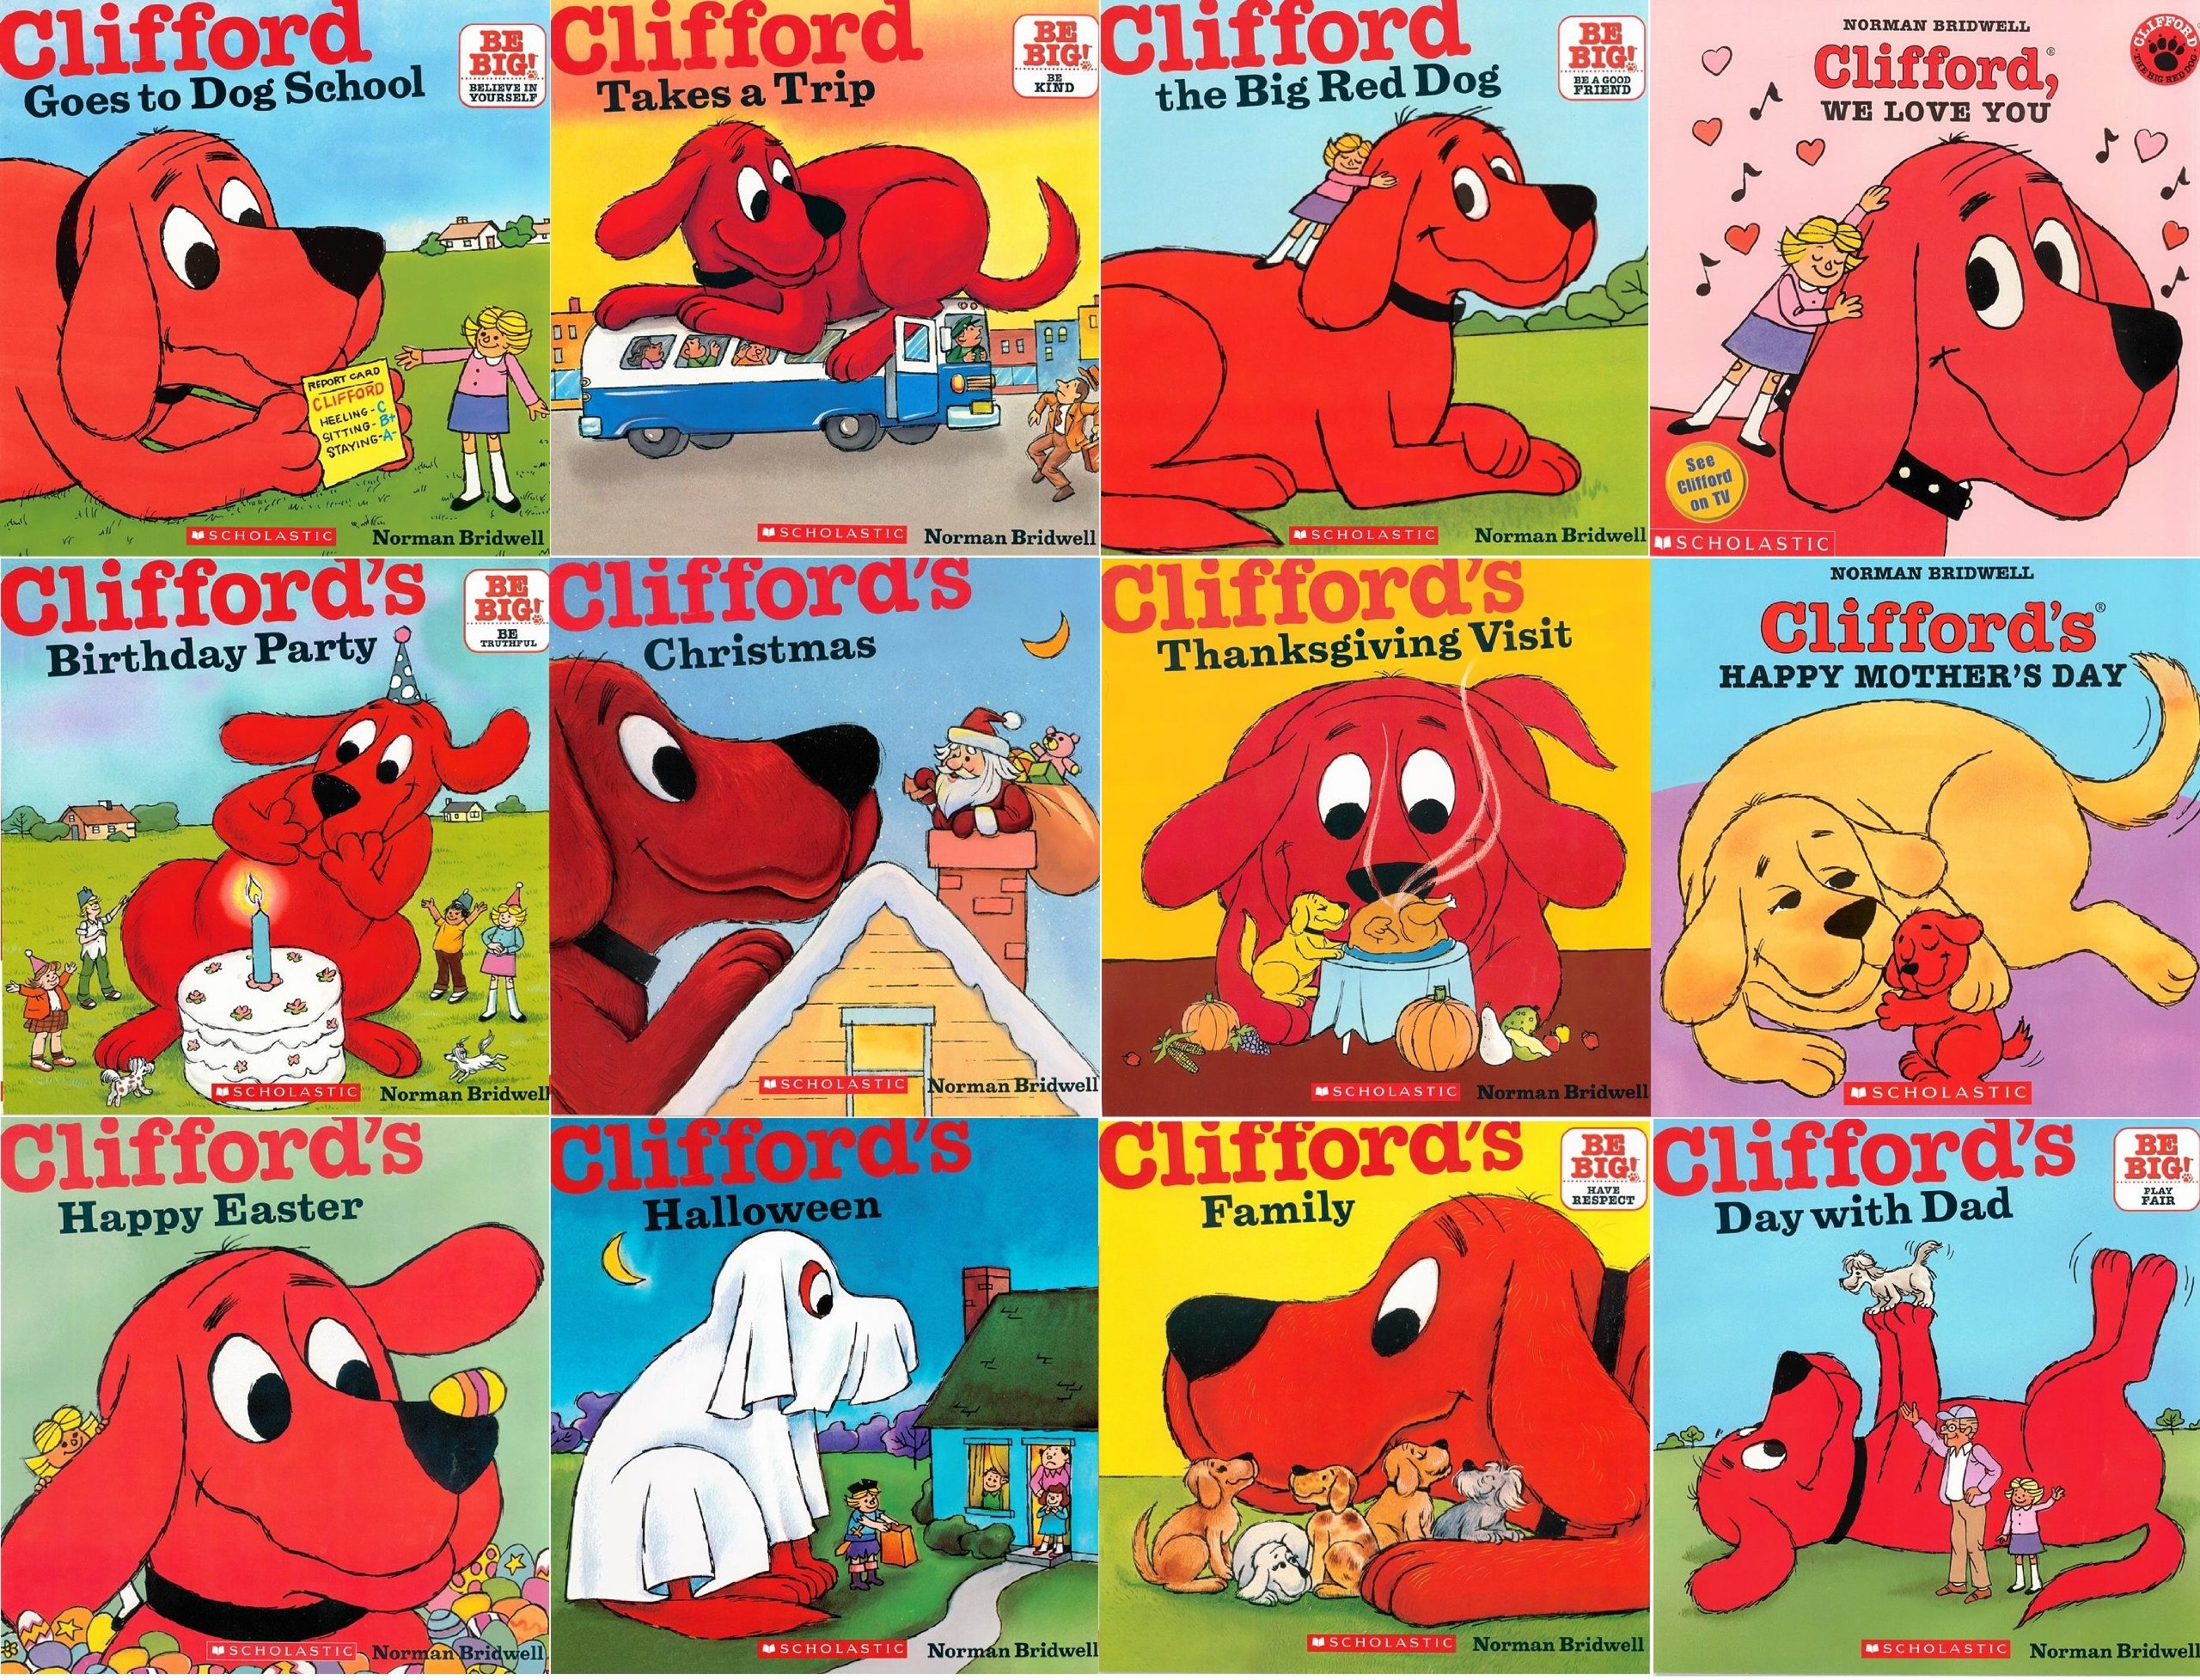 Download Clifford® All Year Pack: Goes to Dog School, Takes a Trip, Clifford the Big Red Dog, Clifford, We Love You, Birthday Party, Clifford's Christmas, Day with Dad, Clifford's Family, Halloween, Happy Easter, Happy Mother's Day, Thanksgiving Visit (Clifford) PDF